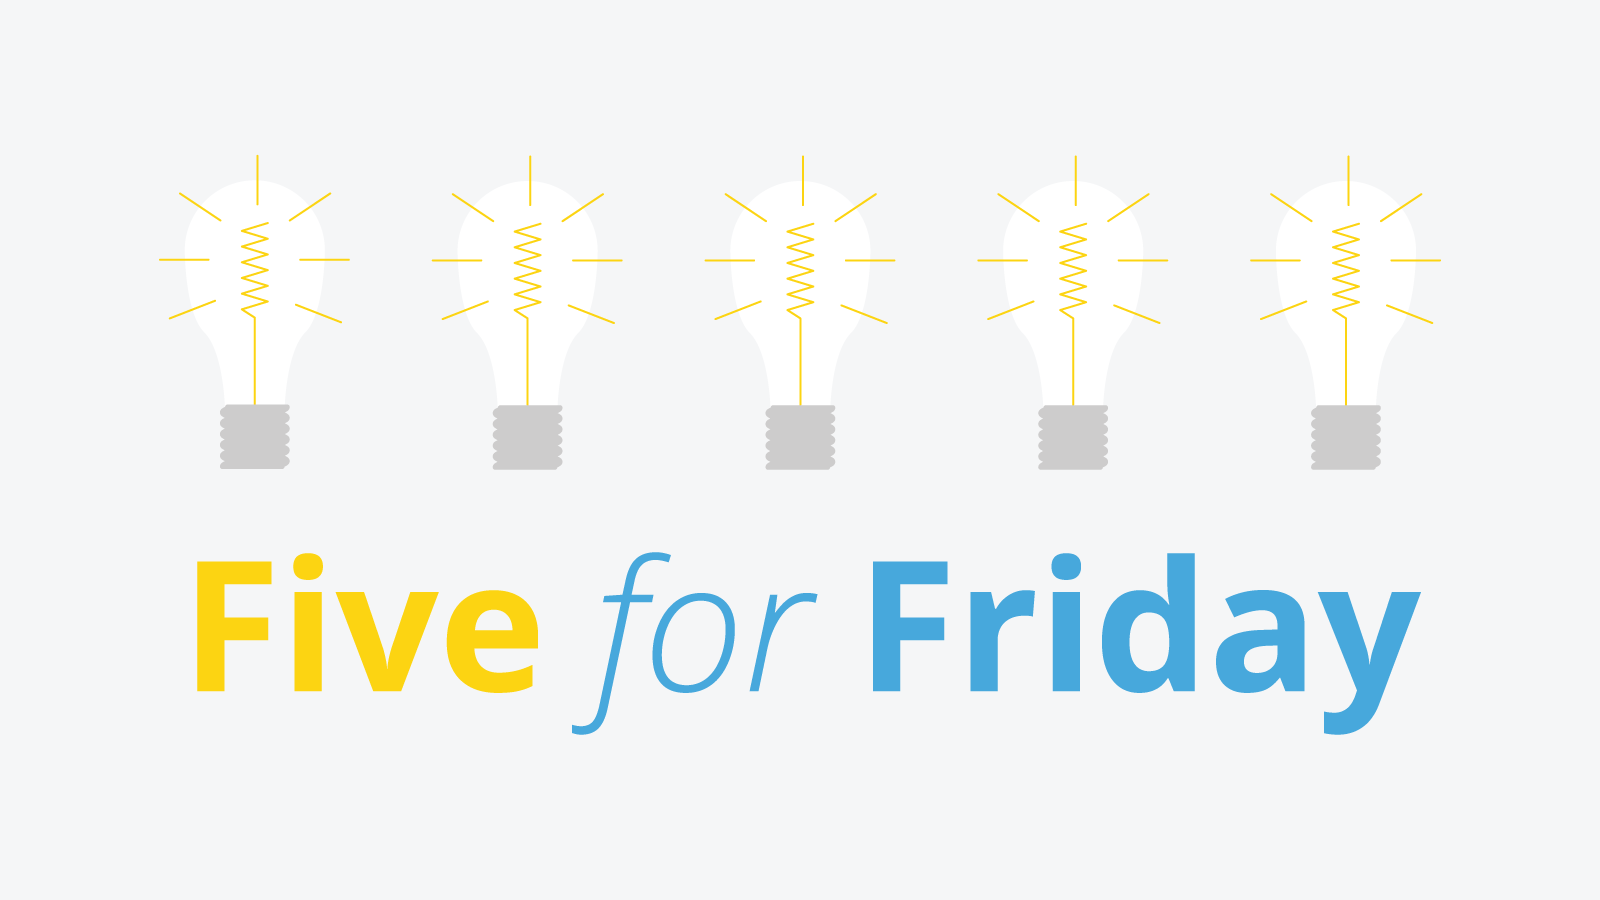 Five for Friday: Employee opinion